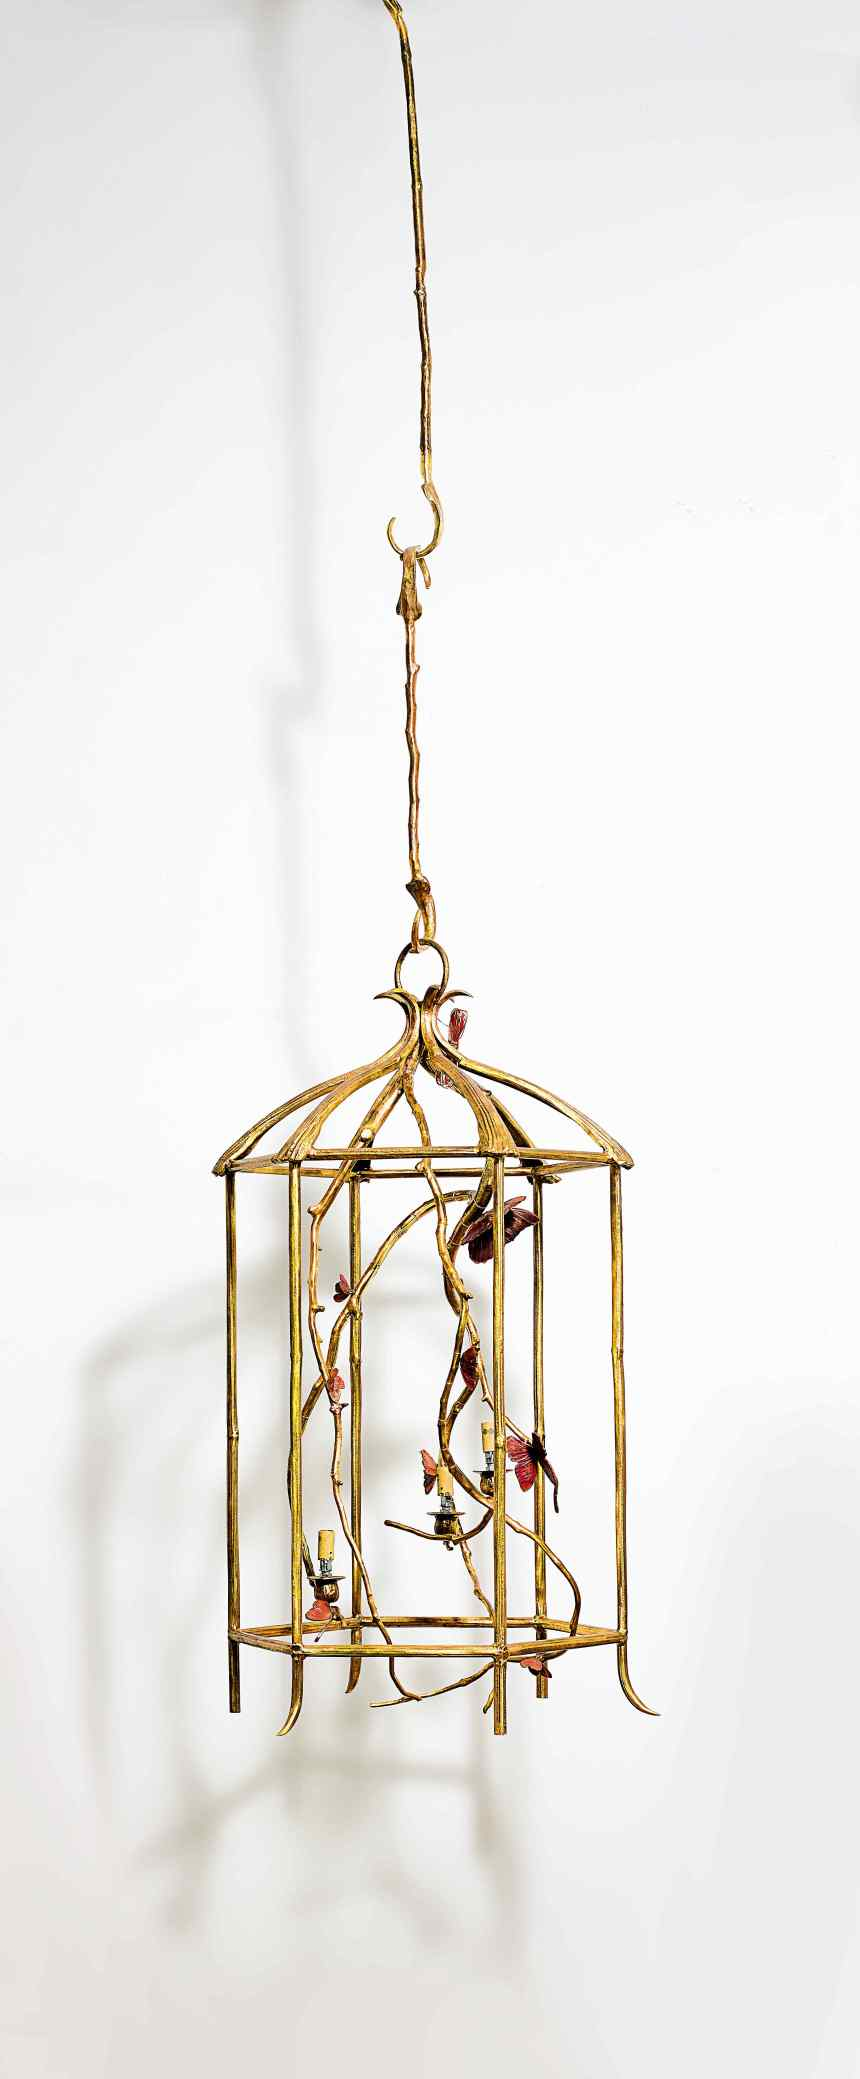 Claude Lalanne_Lantern With Butterflies Courtesy of Sotheby's